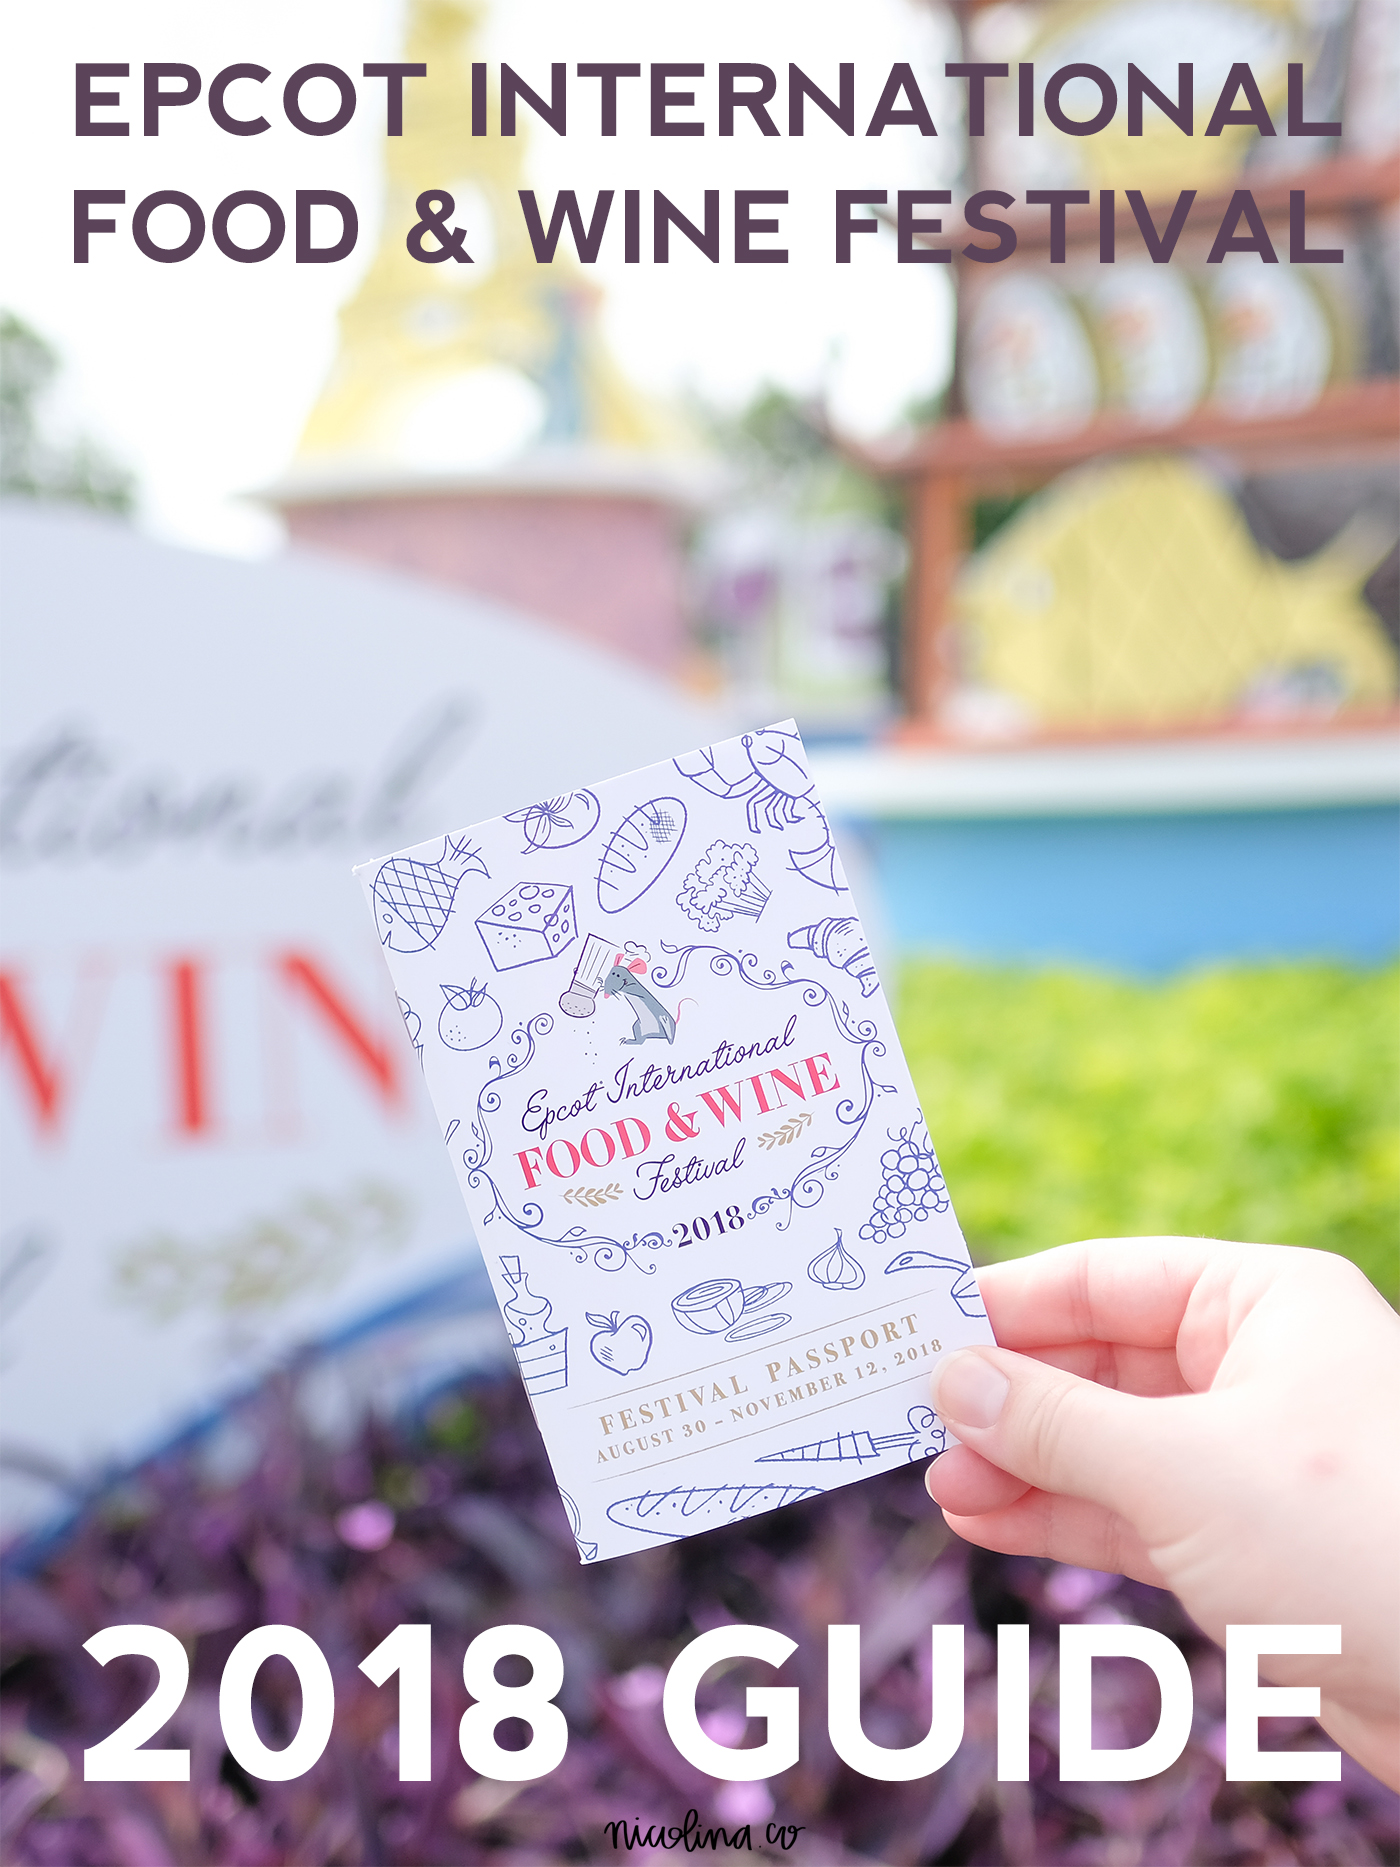 Epcot Food and Wine Festival Guide 2018